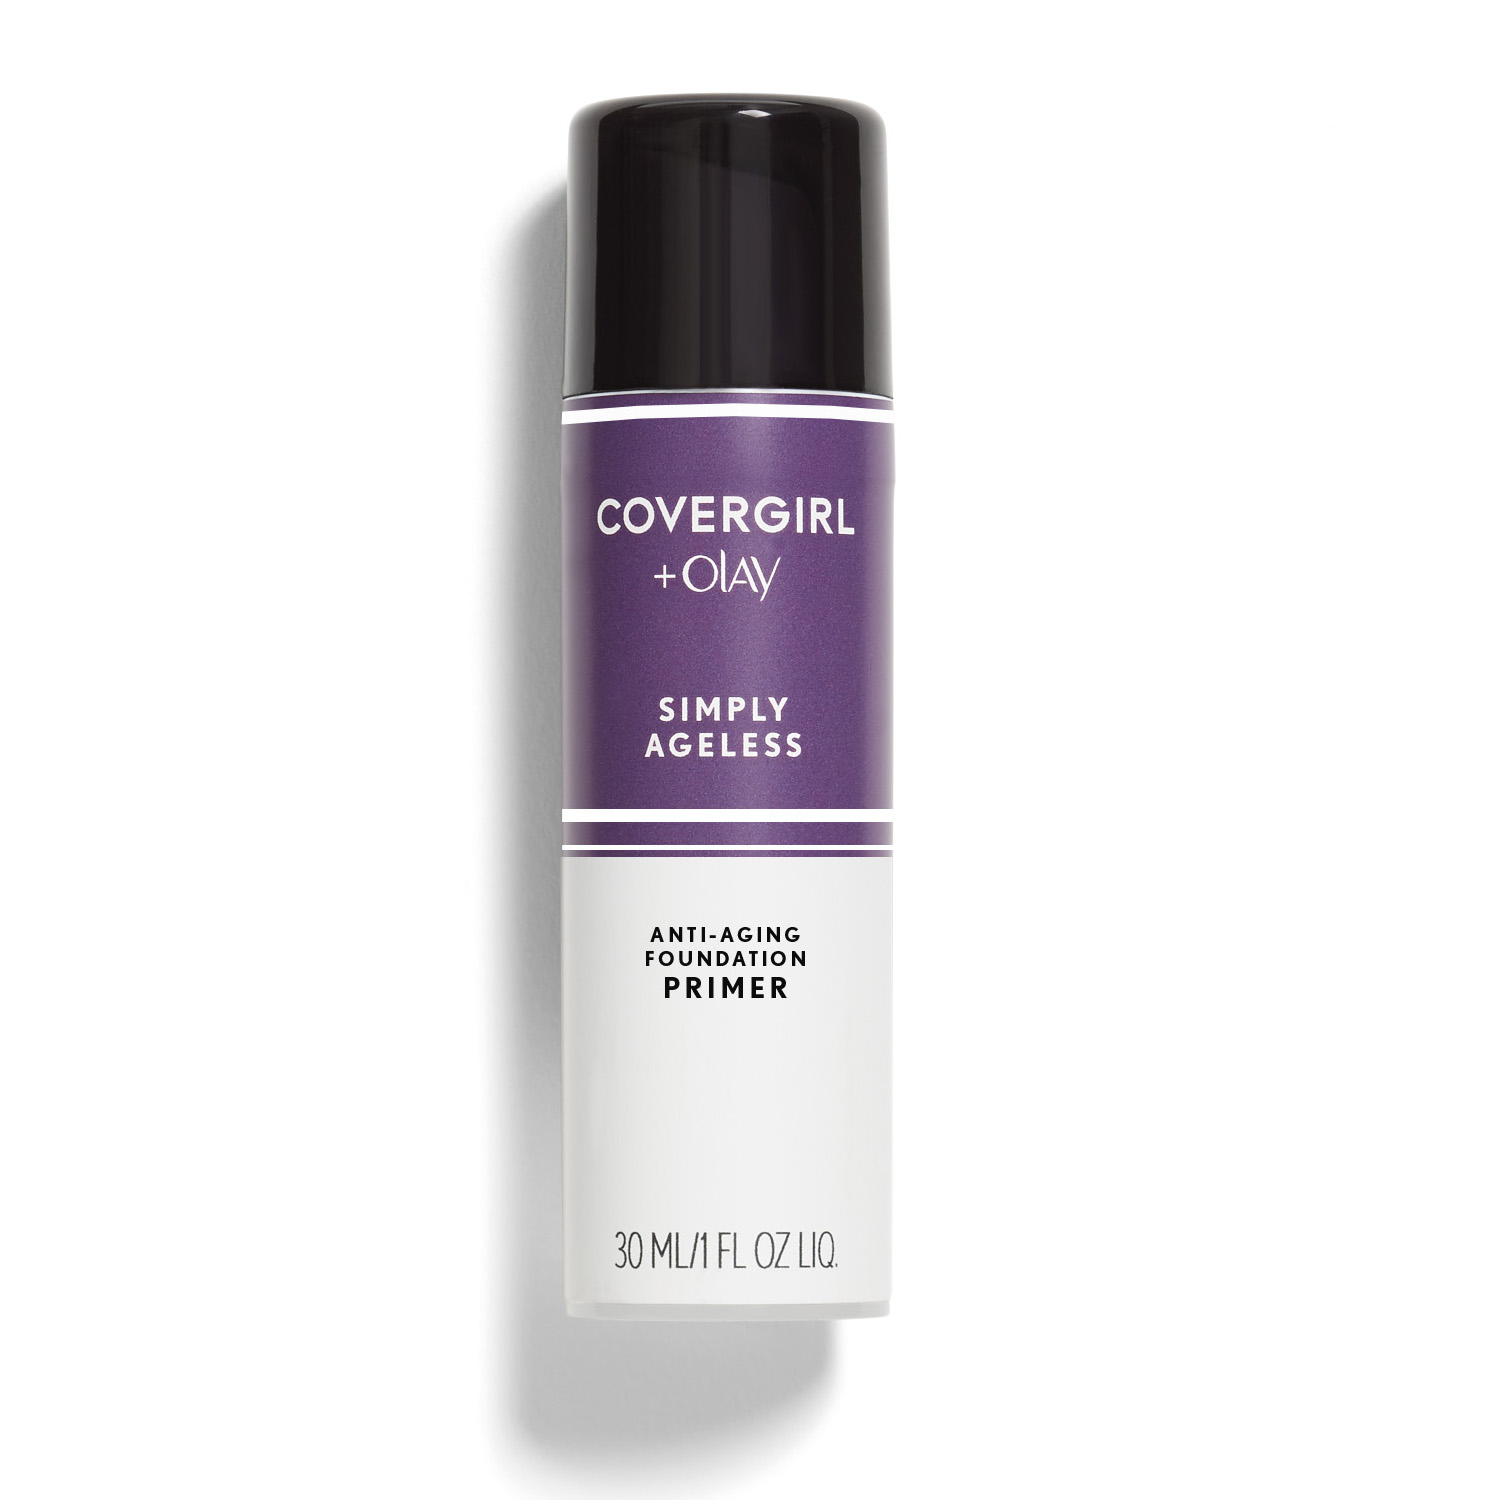 Covergirl Olay Makeup Primer